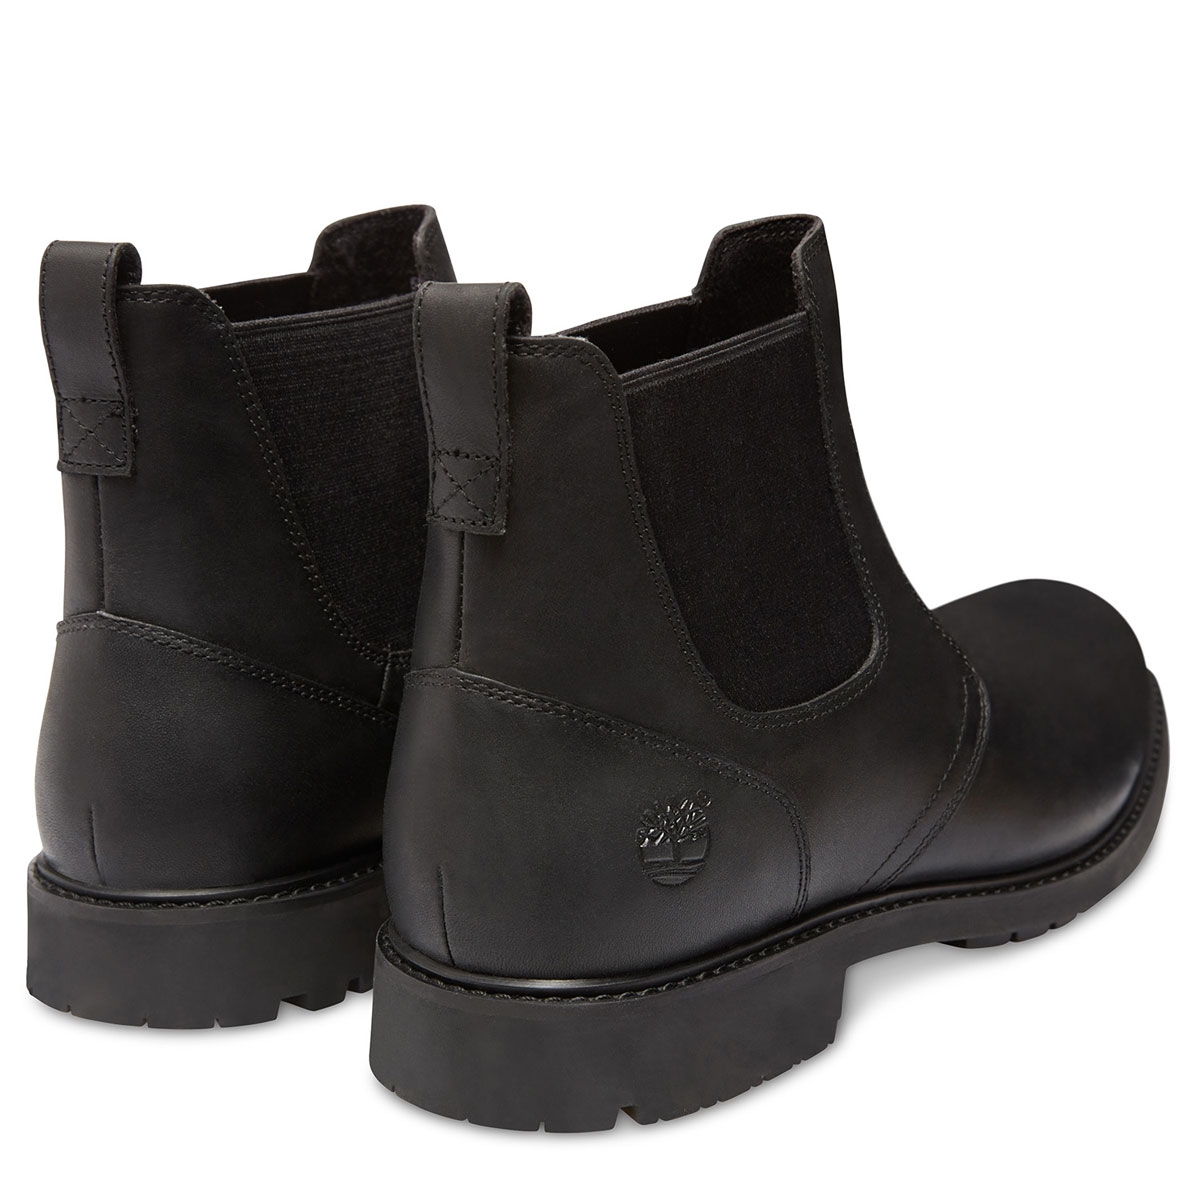 Les Earthkeepers Hommes Timberland Bottes De Cheville Chelsea jAeDlkZN